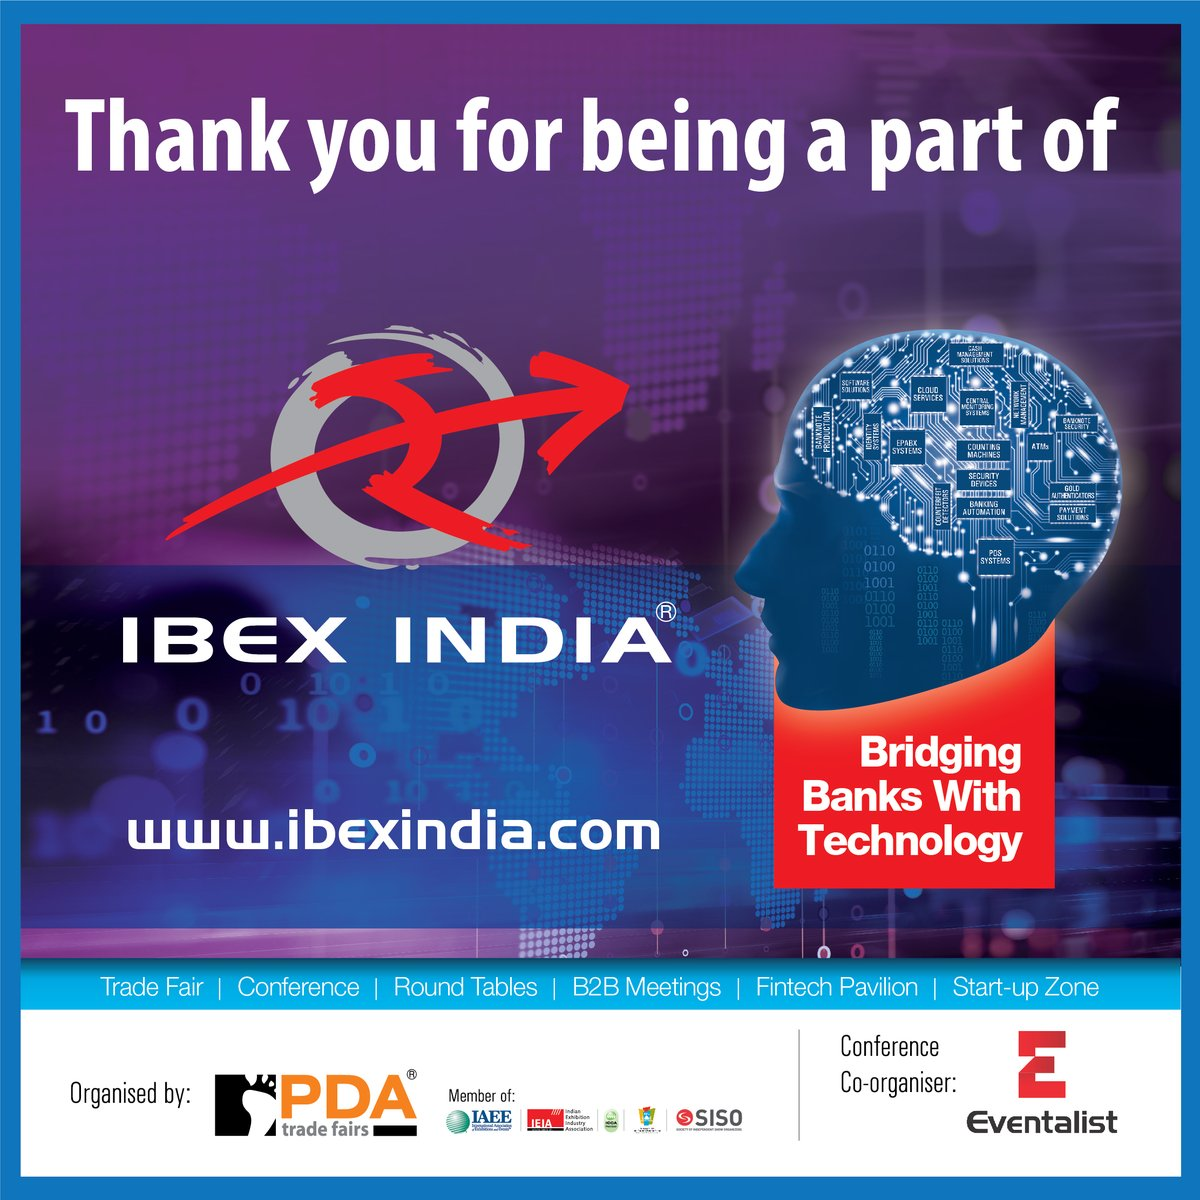 We take this opportunity to thank the industry for being a part of @IBEXIndiaExpo 2020.  #BankingTechnology #Fintech #BankingExpo #Finance #InternationalConference #Technology #BankingApplications #Ibex #IbexIndia2020pic.twitter.com/Vca5JotUSa